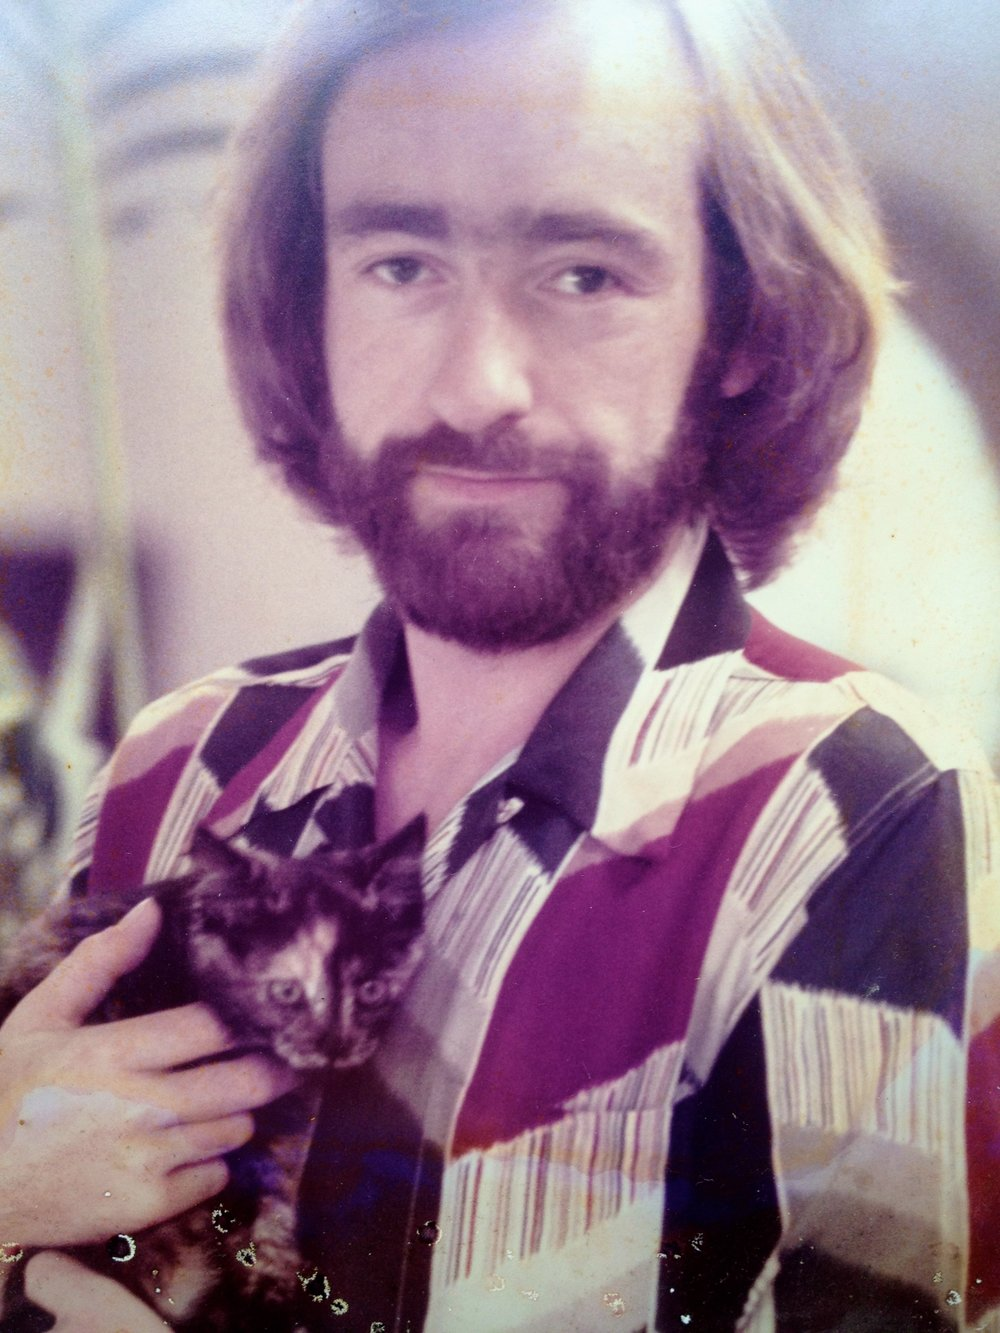 Dave with cat 70's.jpg